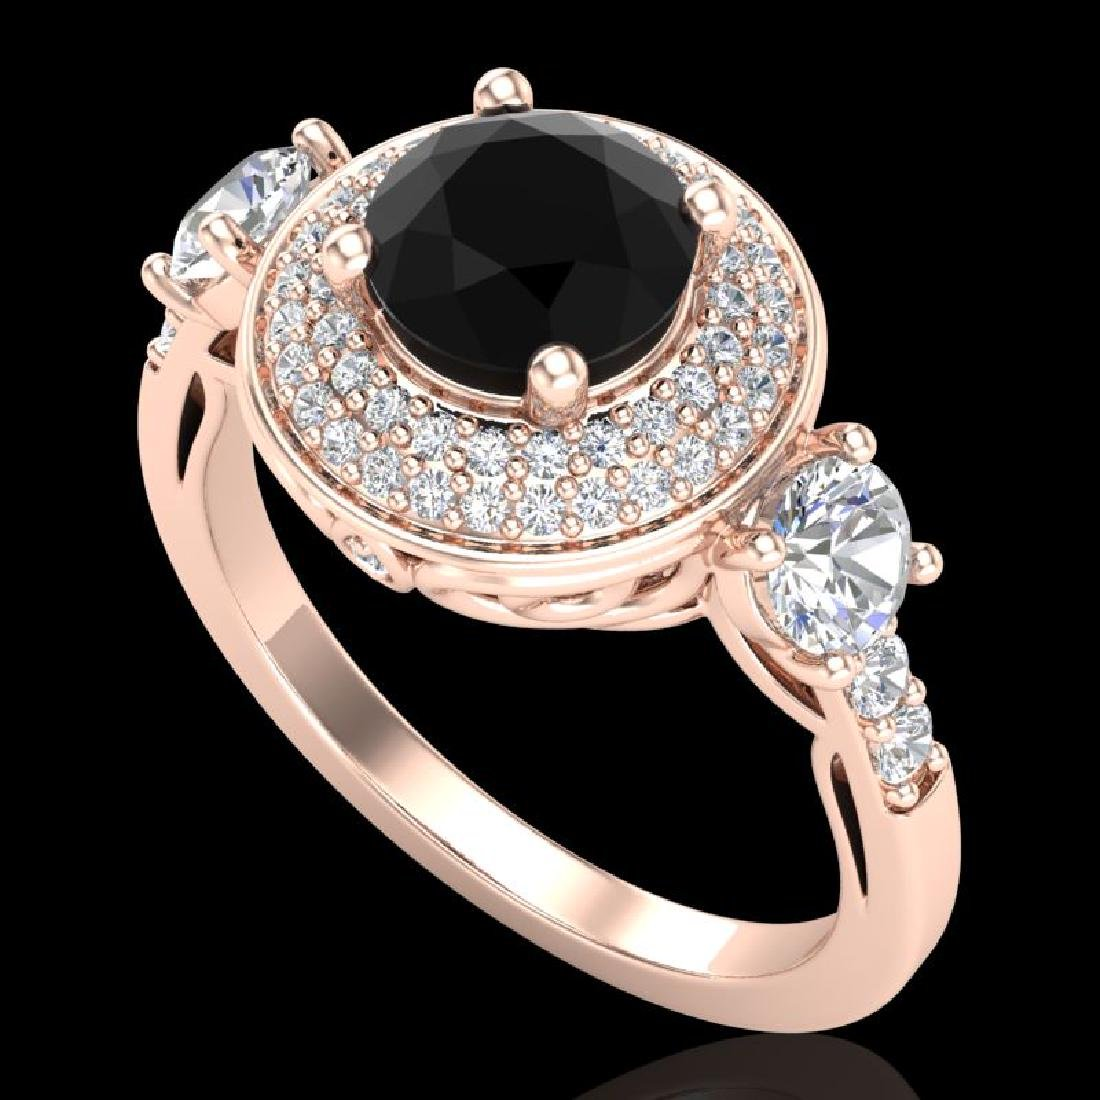 2.05 CTW Fancy Black Diamond Solitaire Art Deco 3 Stone